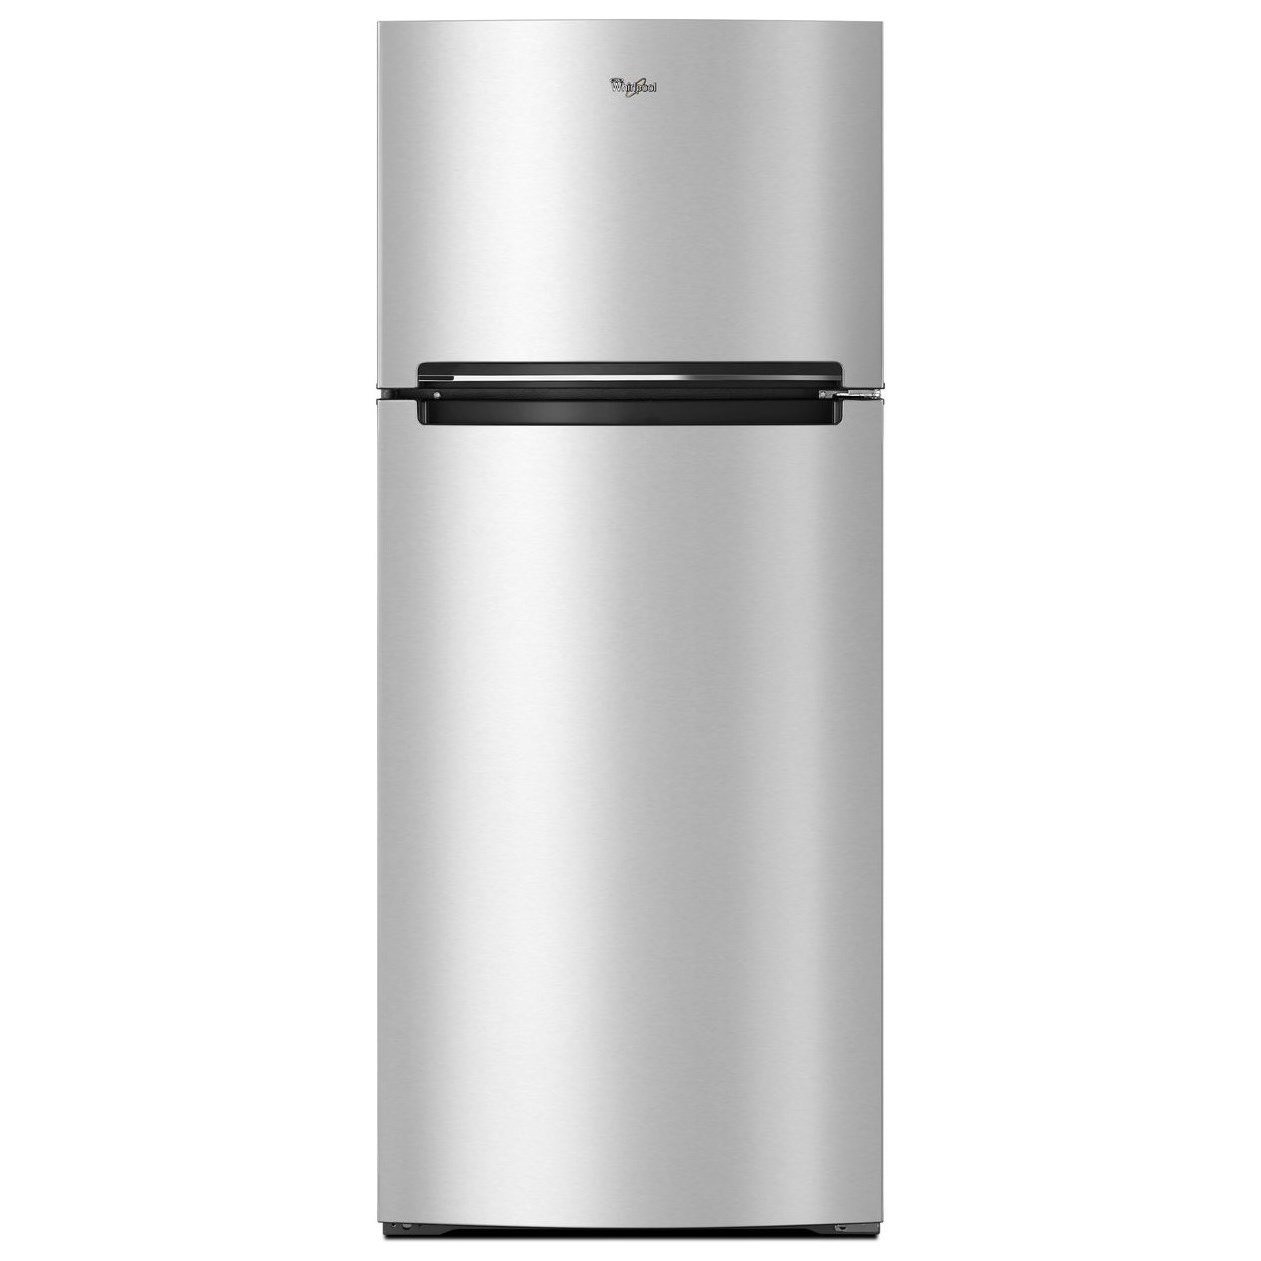 Whirlpool Top Mount Refrigerators 28-inch Wide Whirlpool® Refrigerator - Item Number: WRT518SZFM